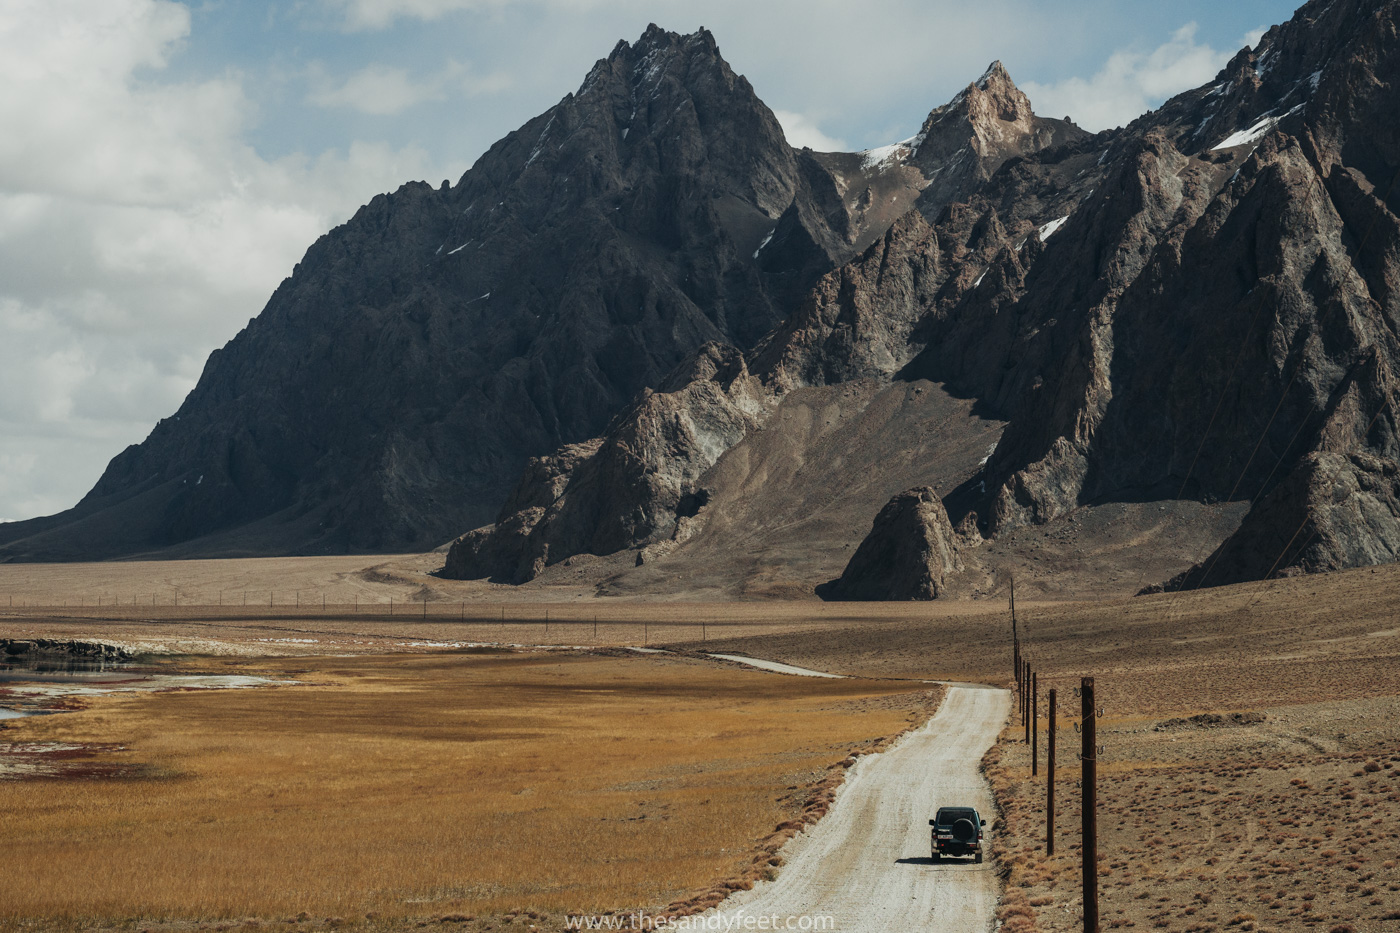 An Epic 10-Day Itinerary for the Pamir Highway through Kyrgyzstan and Tajikistan